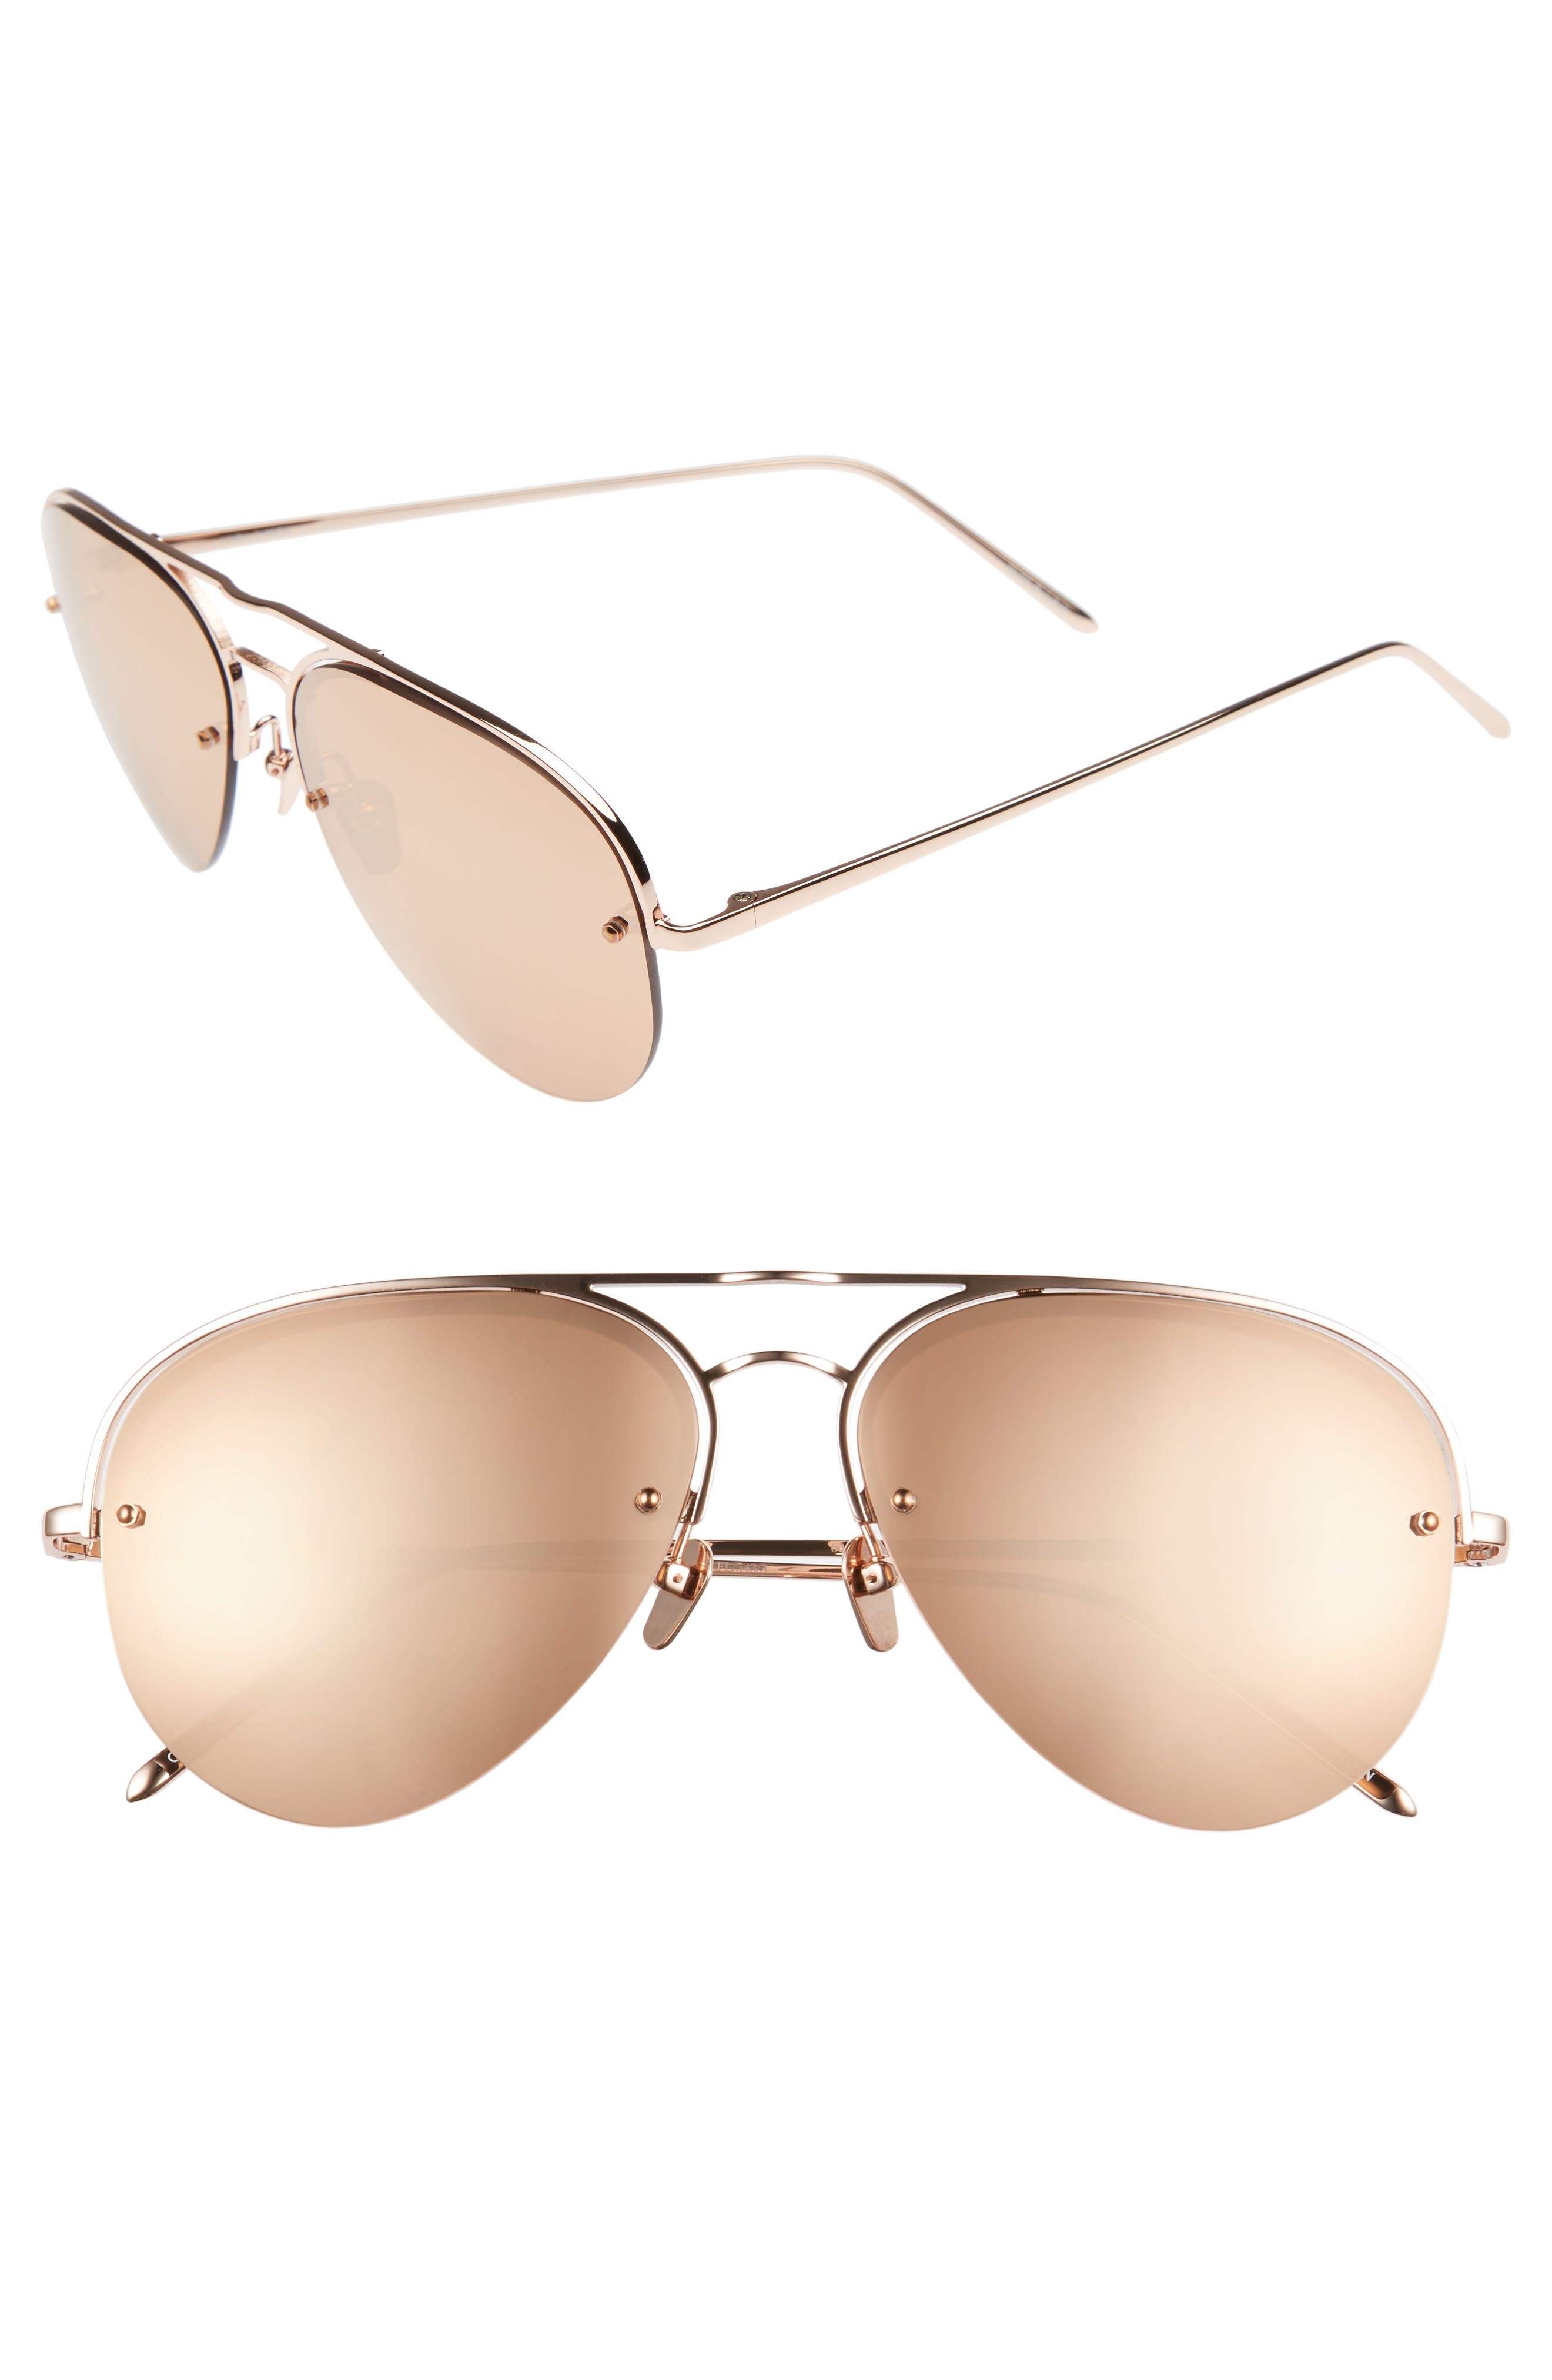 60mm Mirrored 18 Karat Gold Aviator Sunglasses,                             Main thumbnail 1, color,                             ROSE GOLD